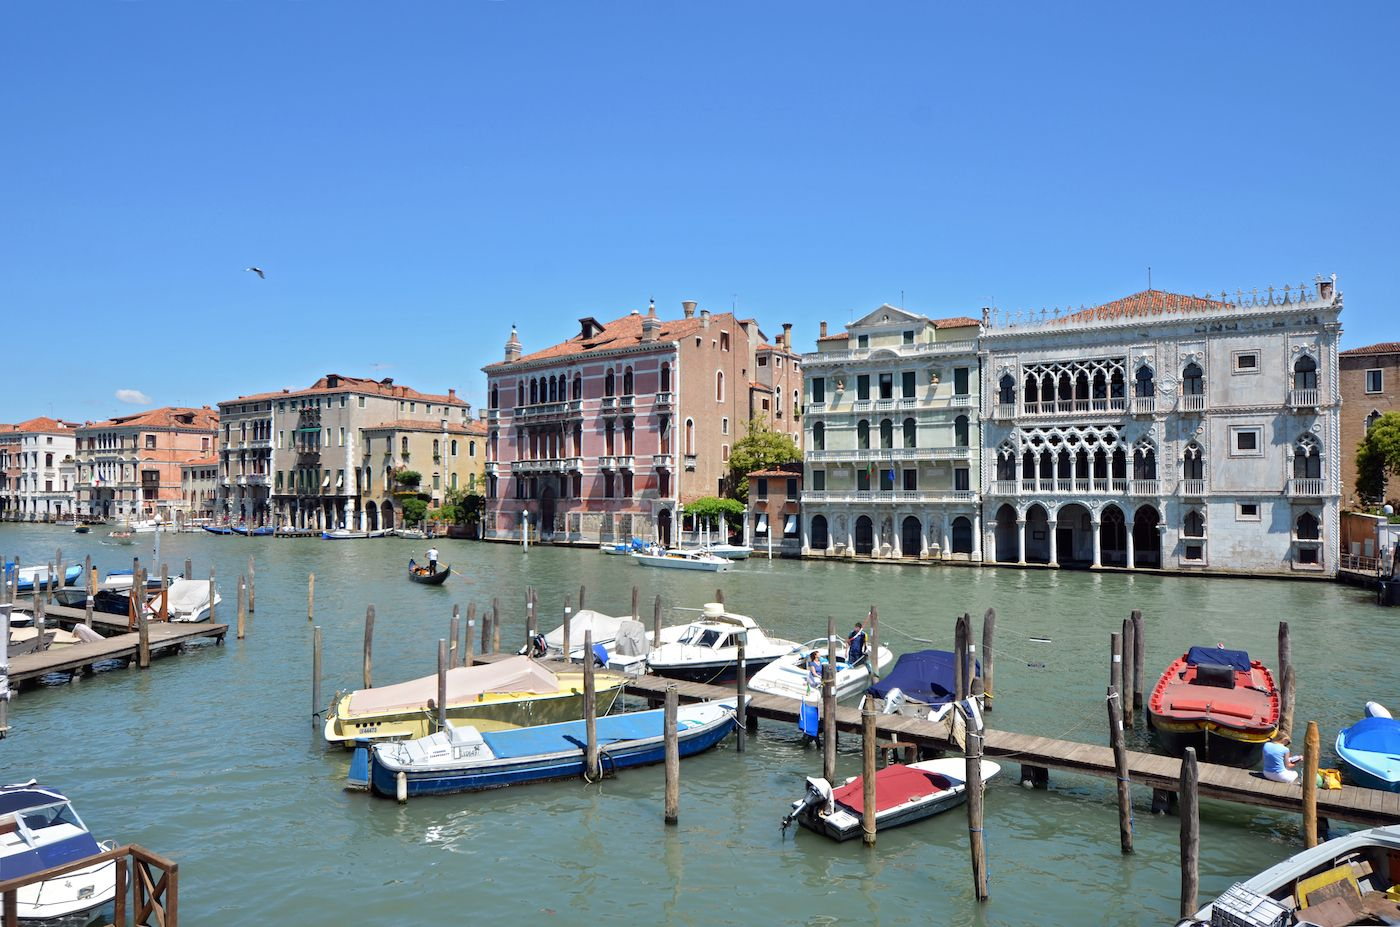 panoramic view from the living room of the Alba d'Oro on the Grand Canal